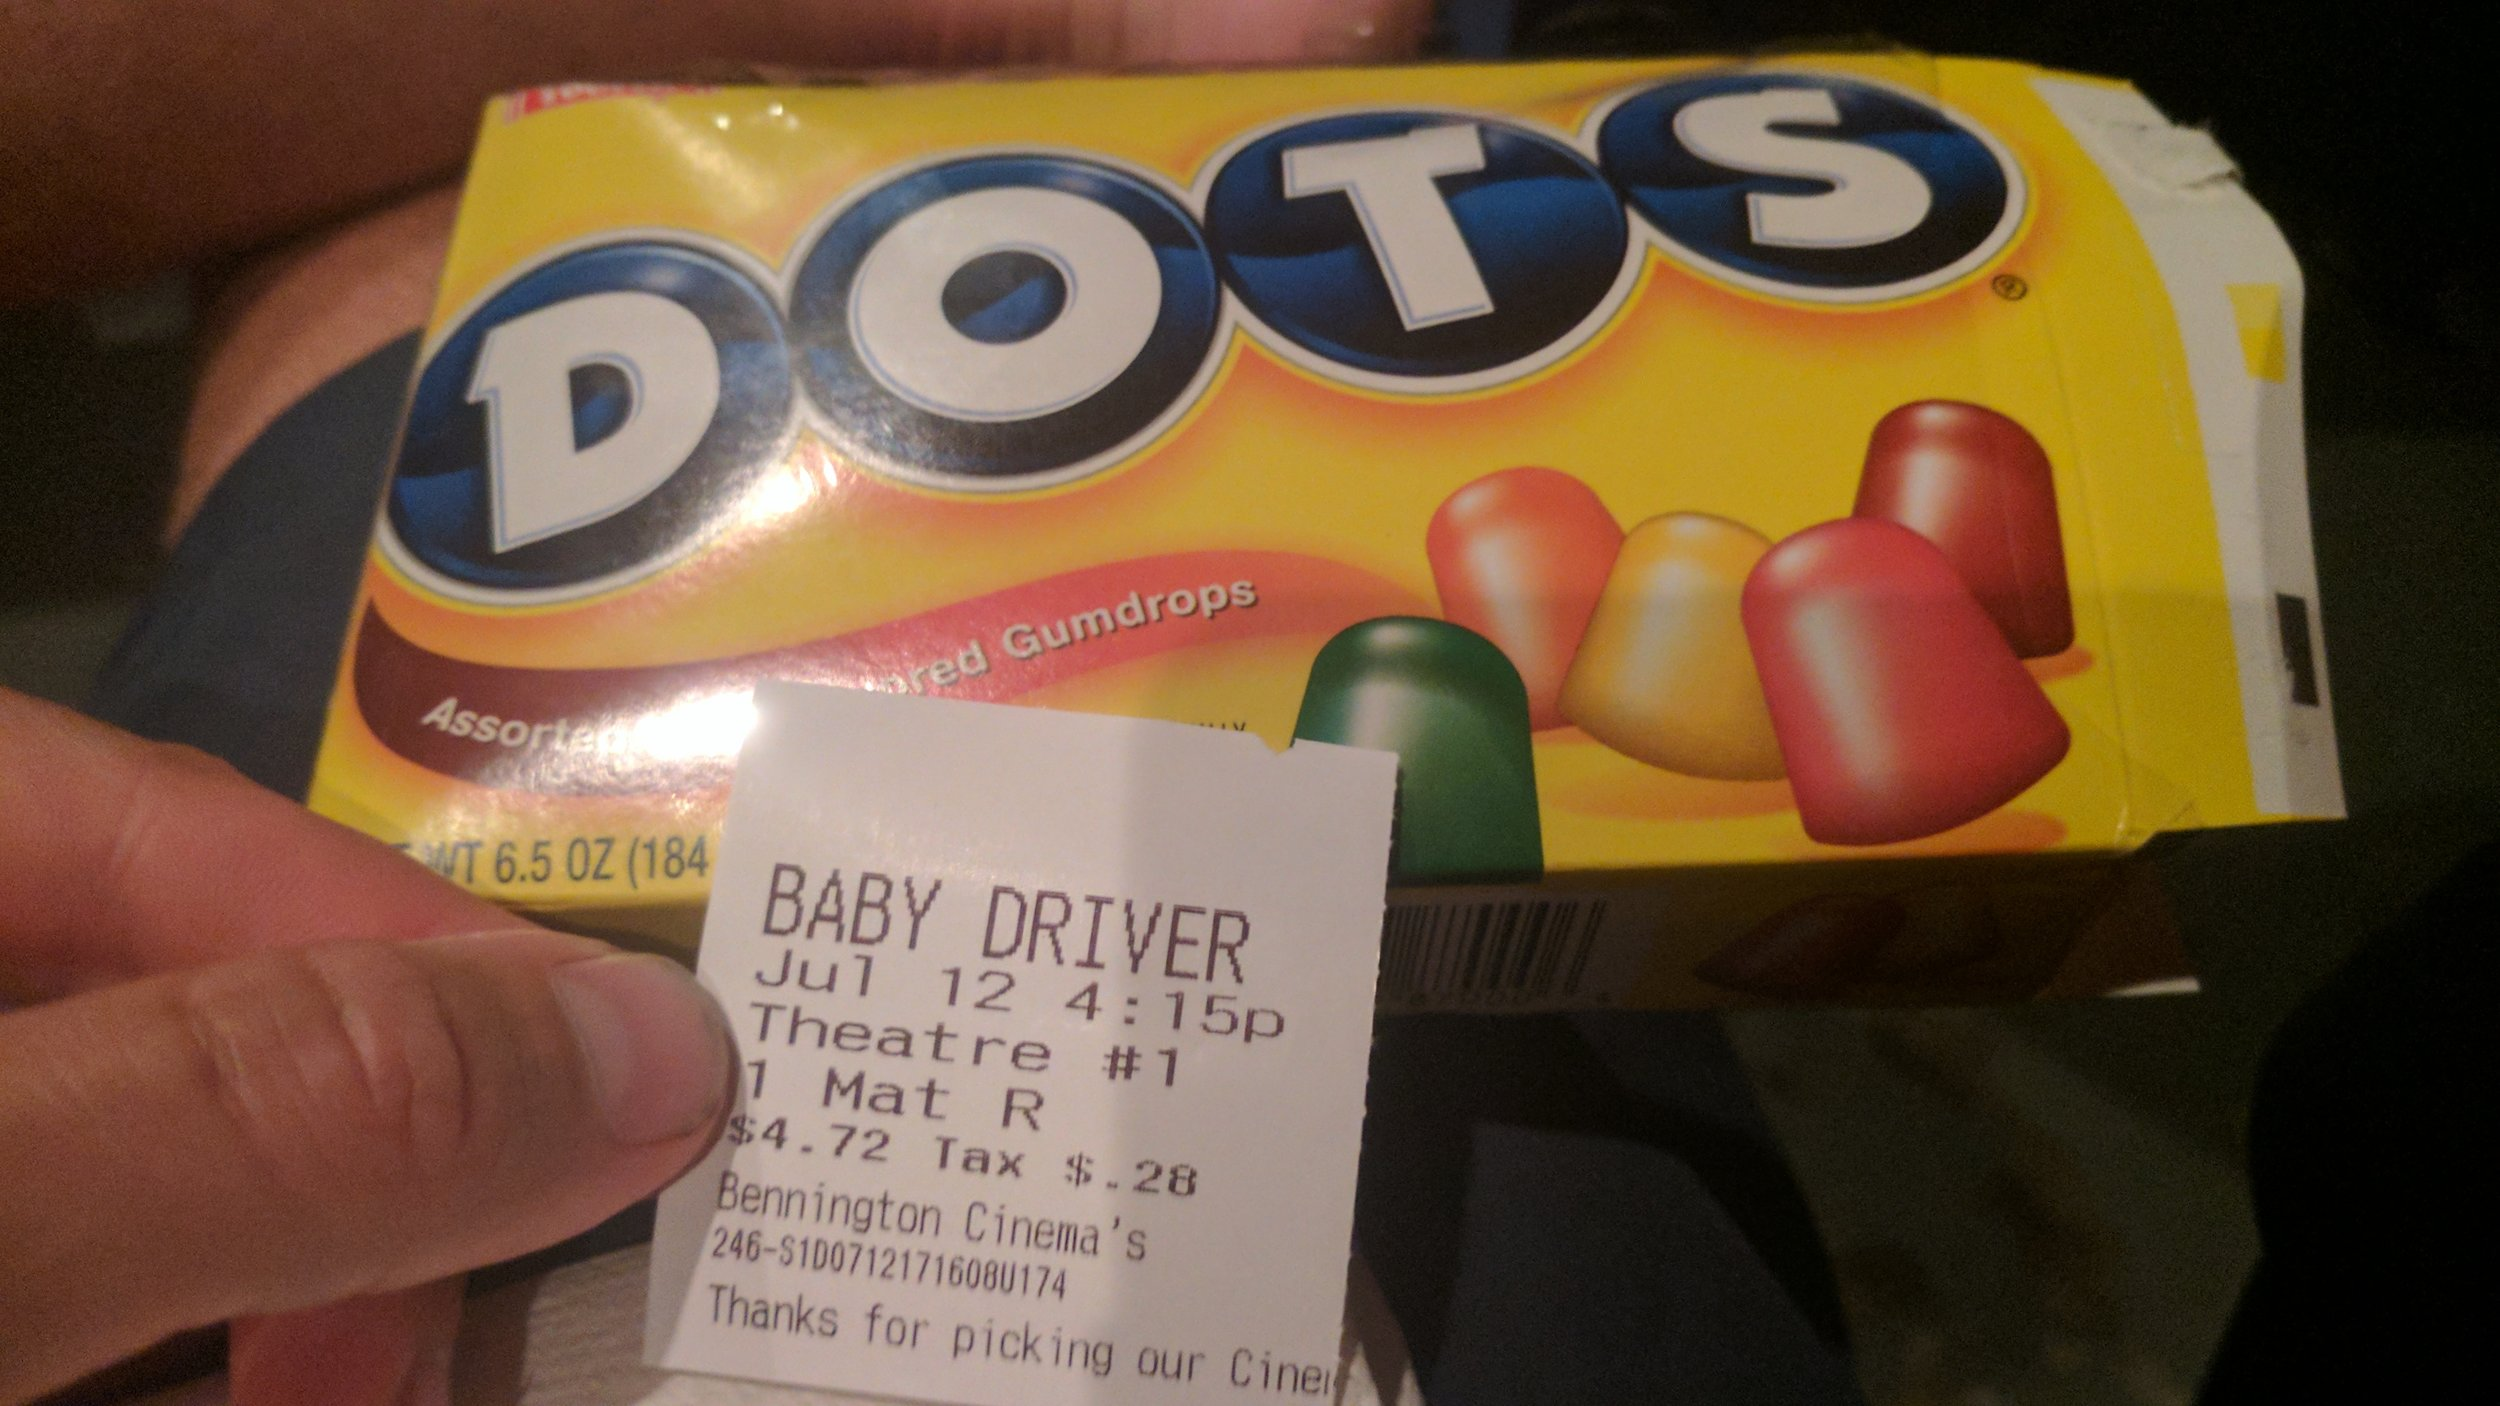 This theater is so old it still sells Dots!